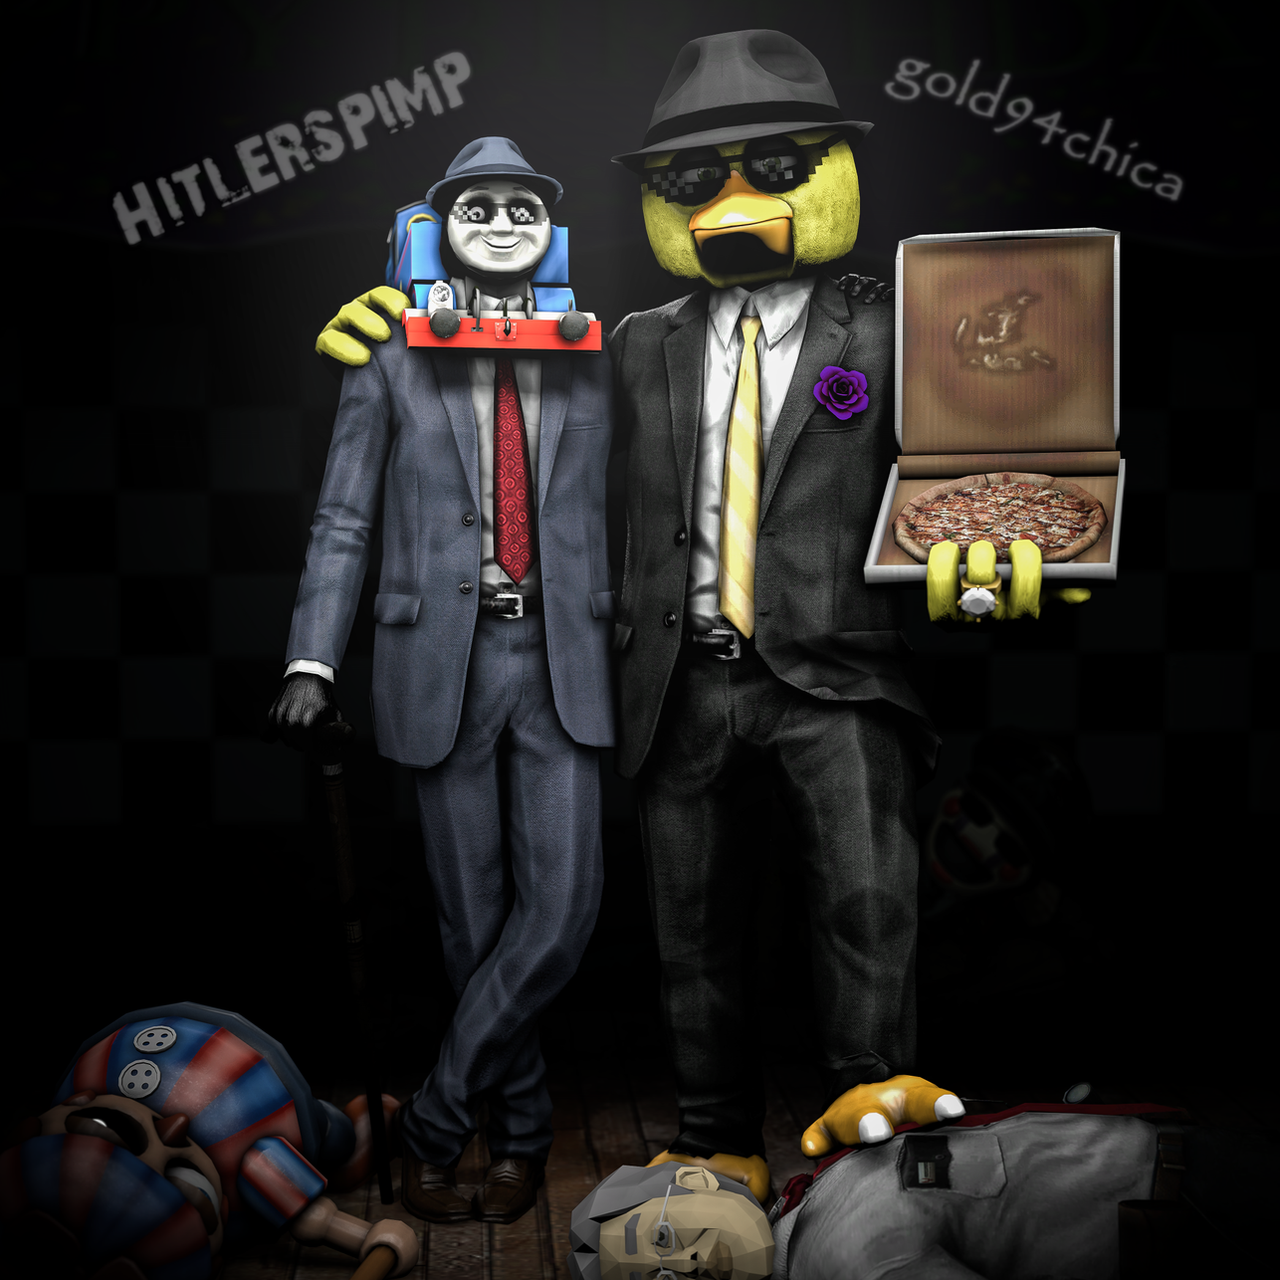 True Pimps: Hitlerspimp And Gold94chica By Gold94chica On